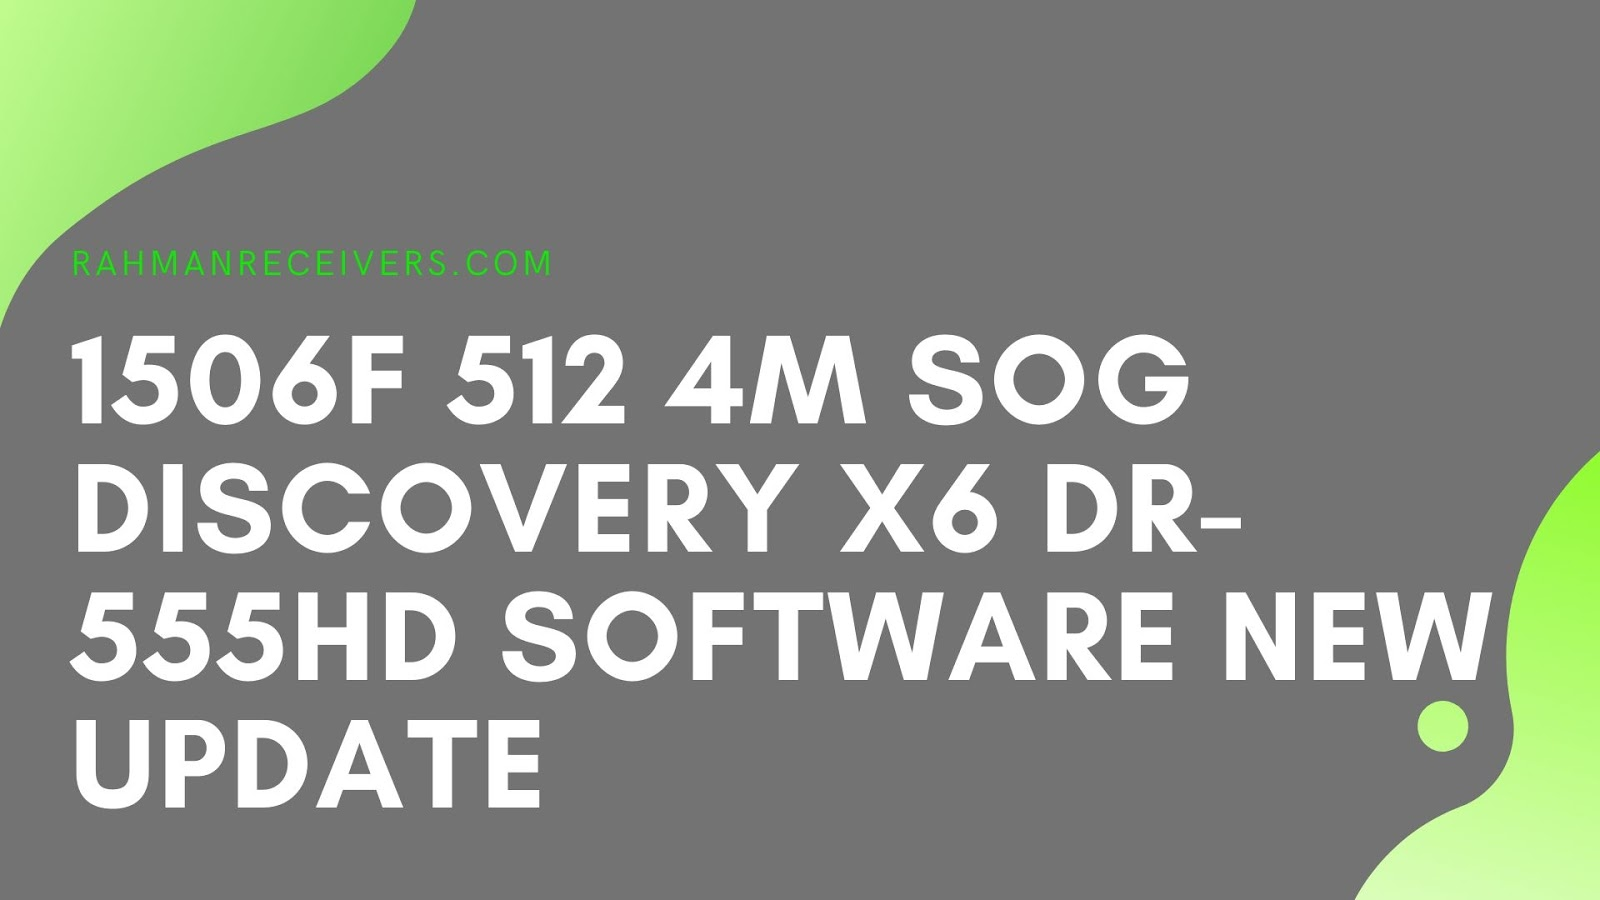 1506F 512 4M SOG DISCOVERY X6 DR-555HD SOFTWARE NEW UPDATE